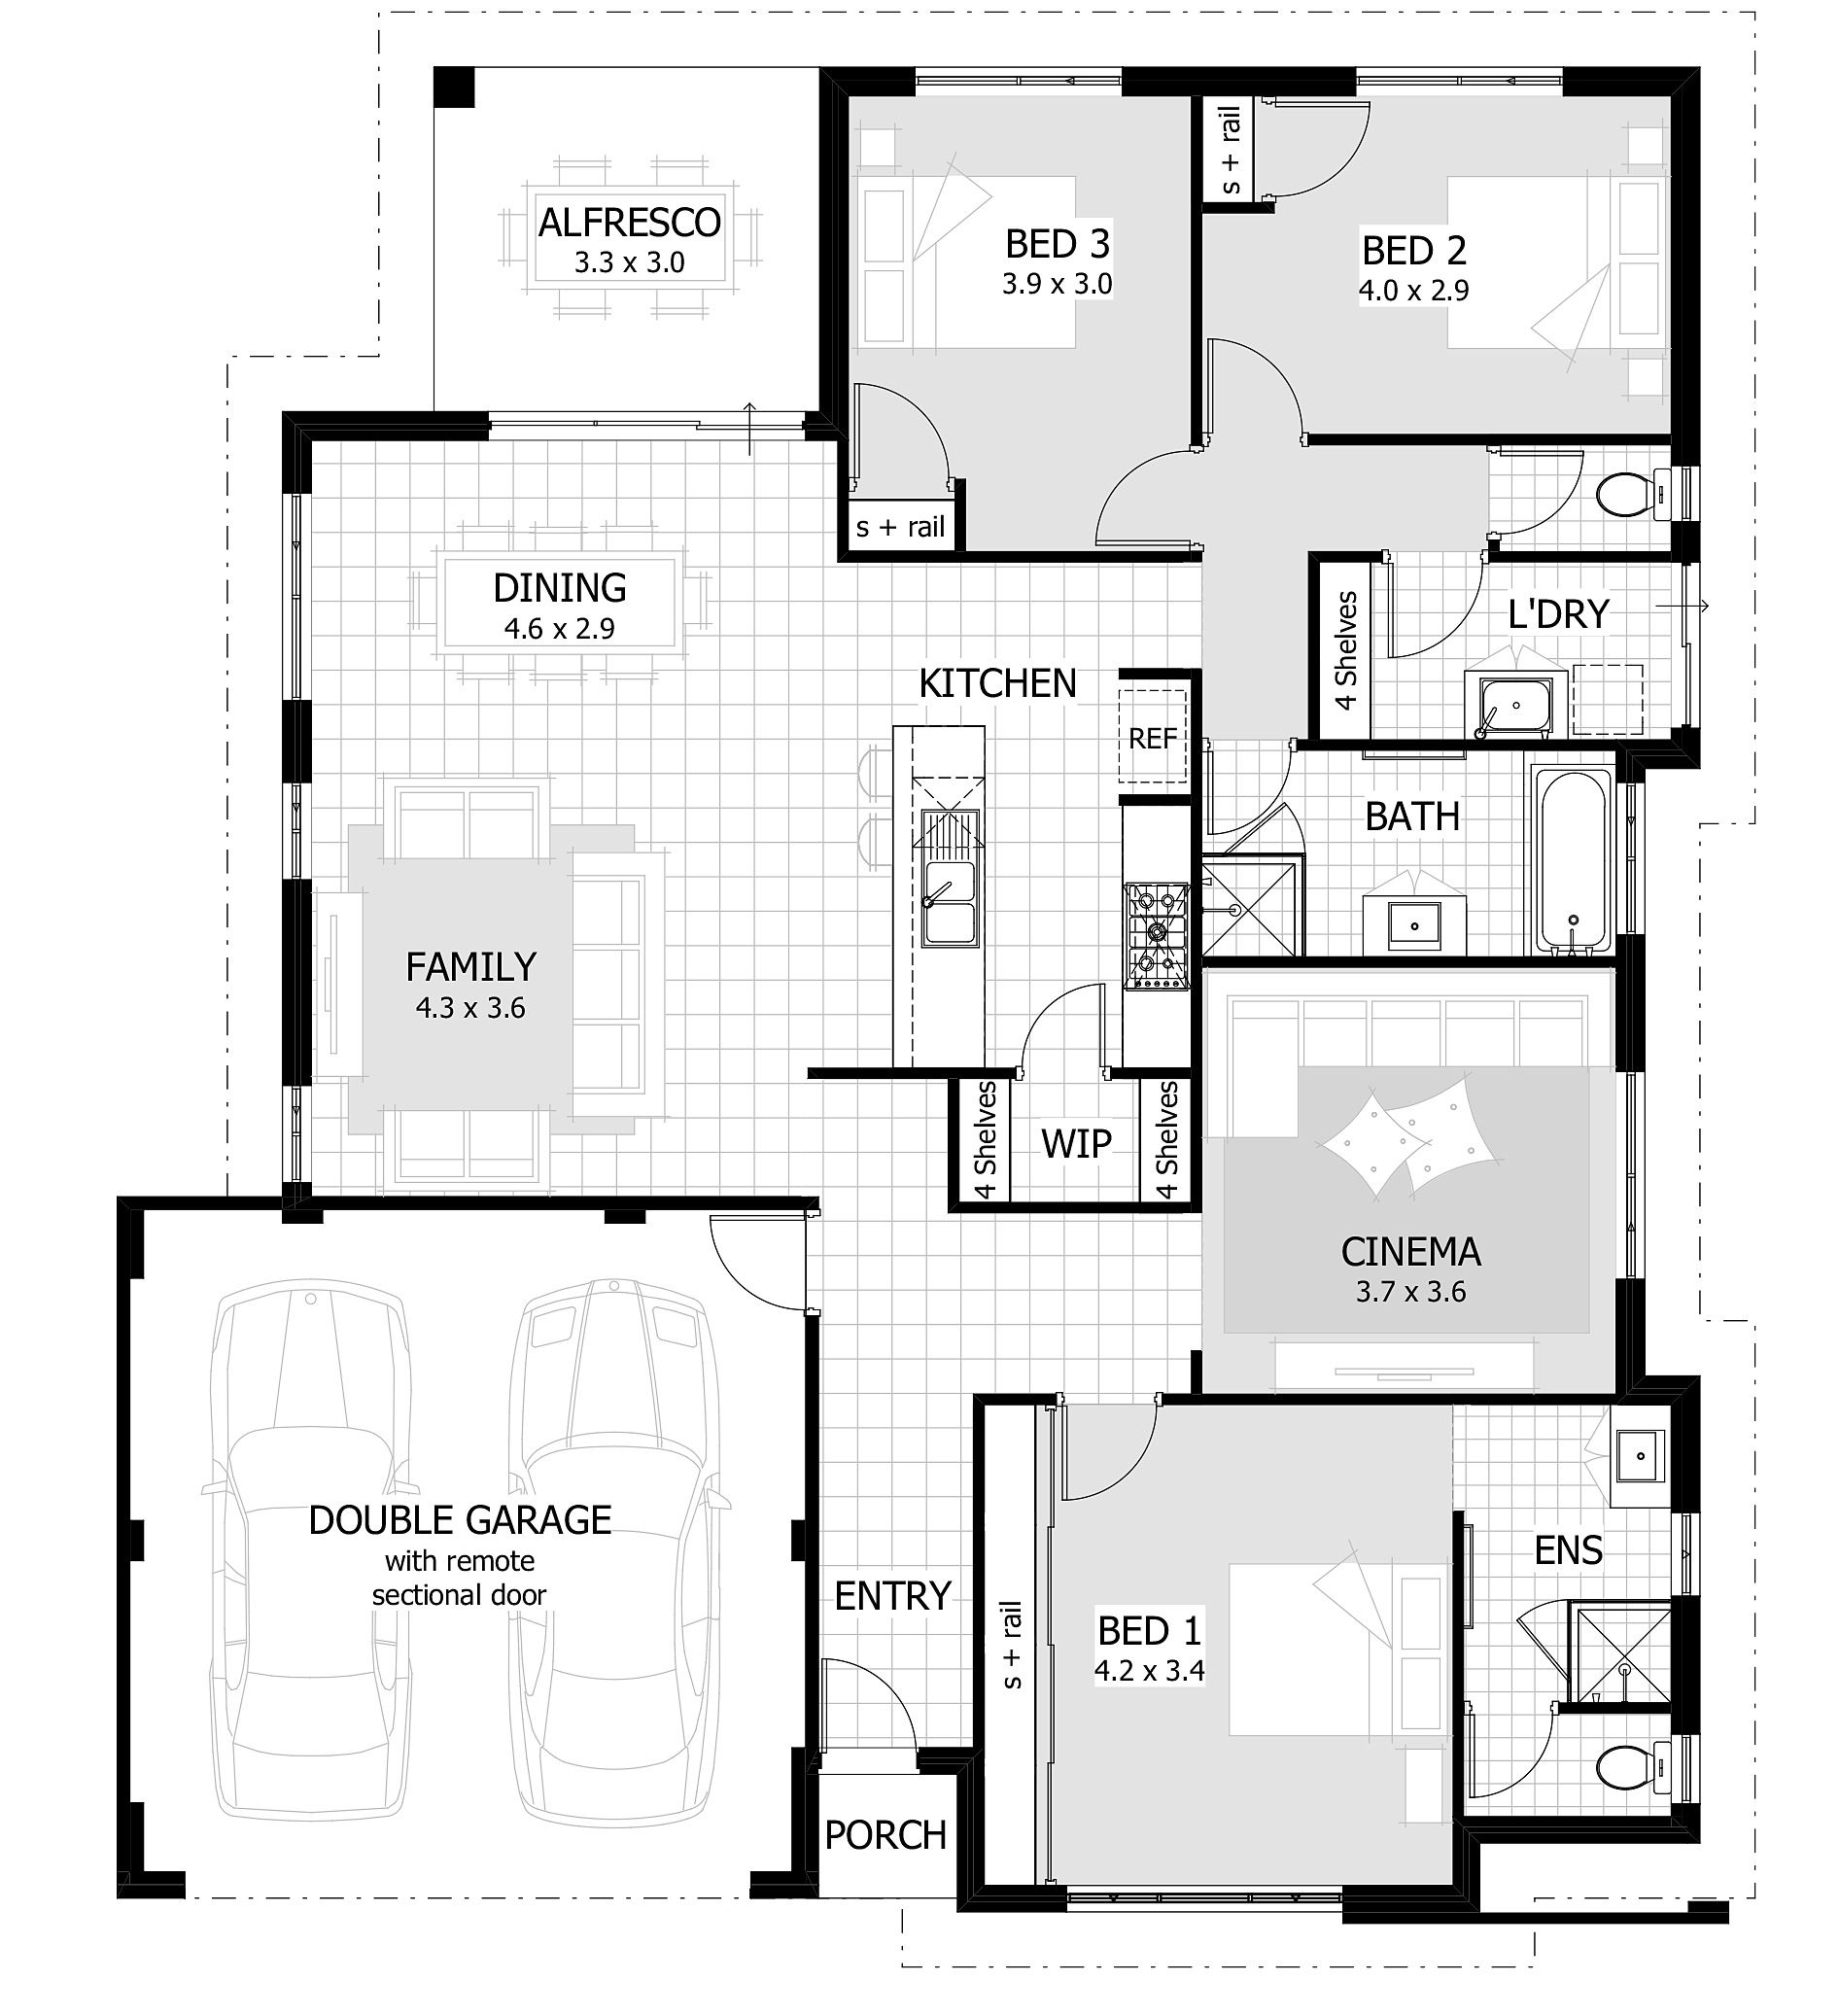 three bedroom modern house plans home ideas picture designs small ...